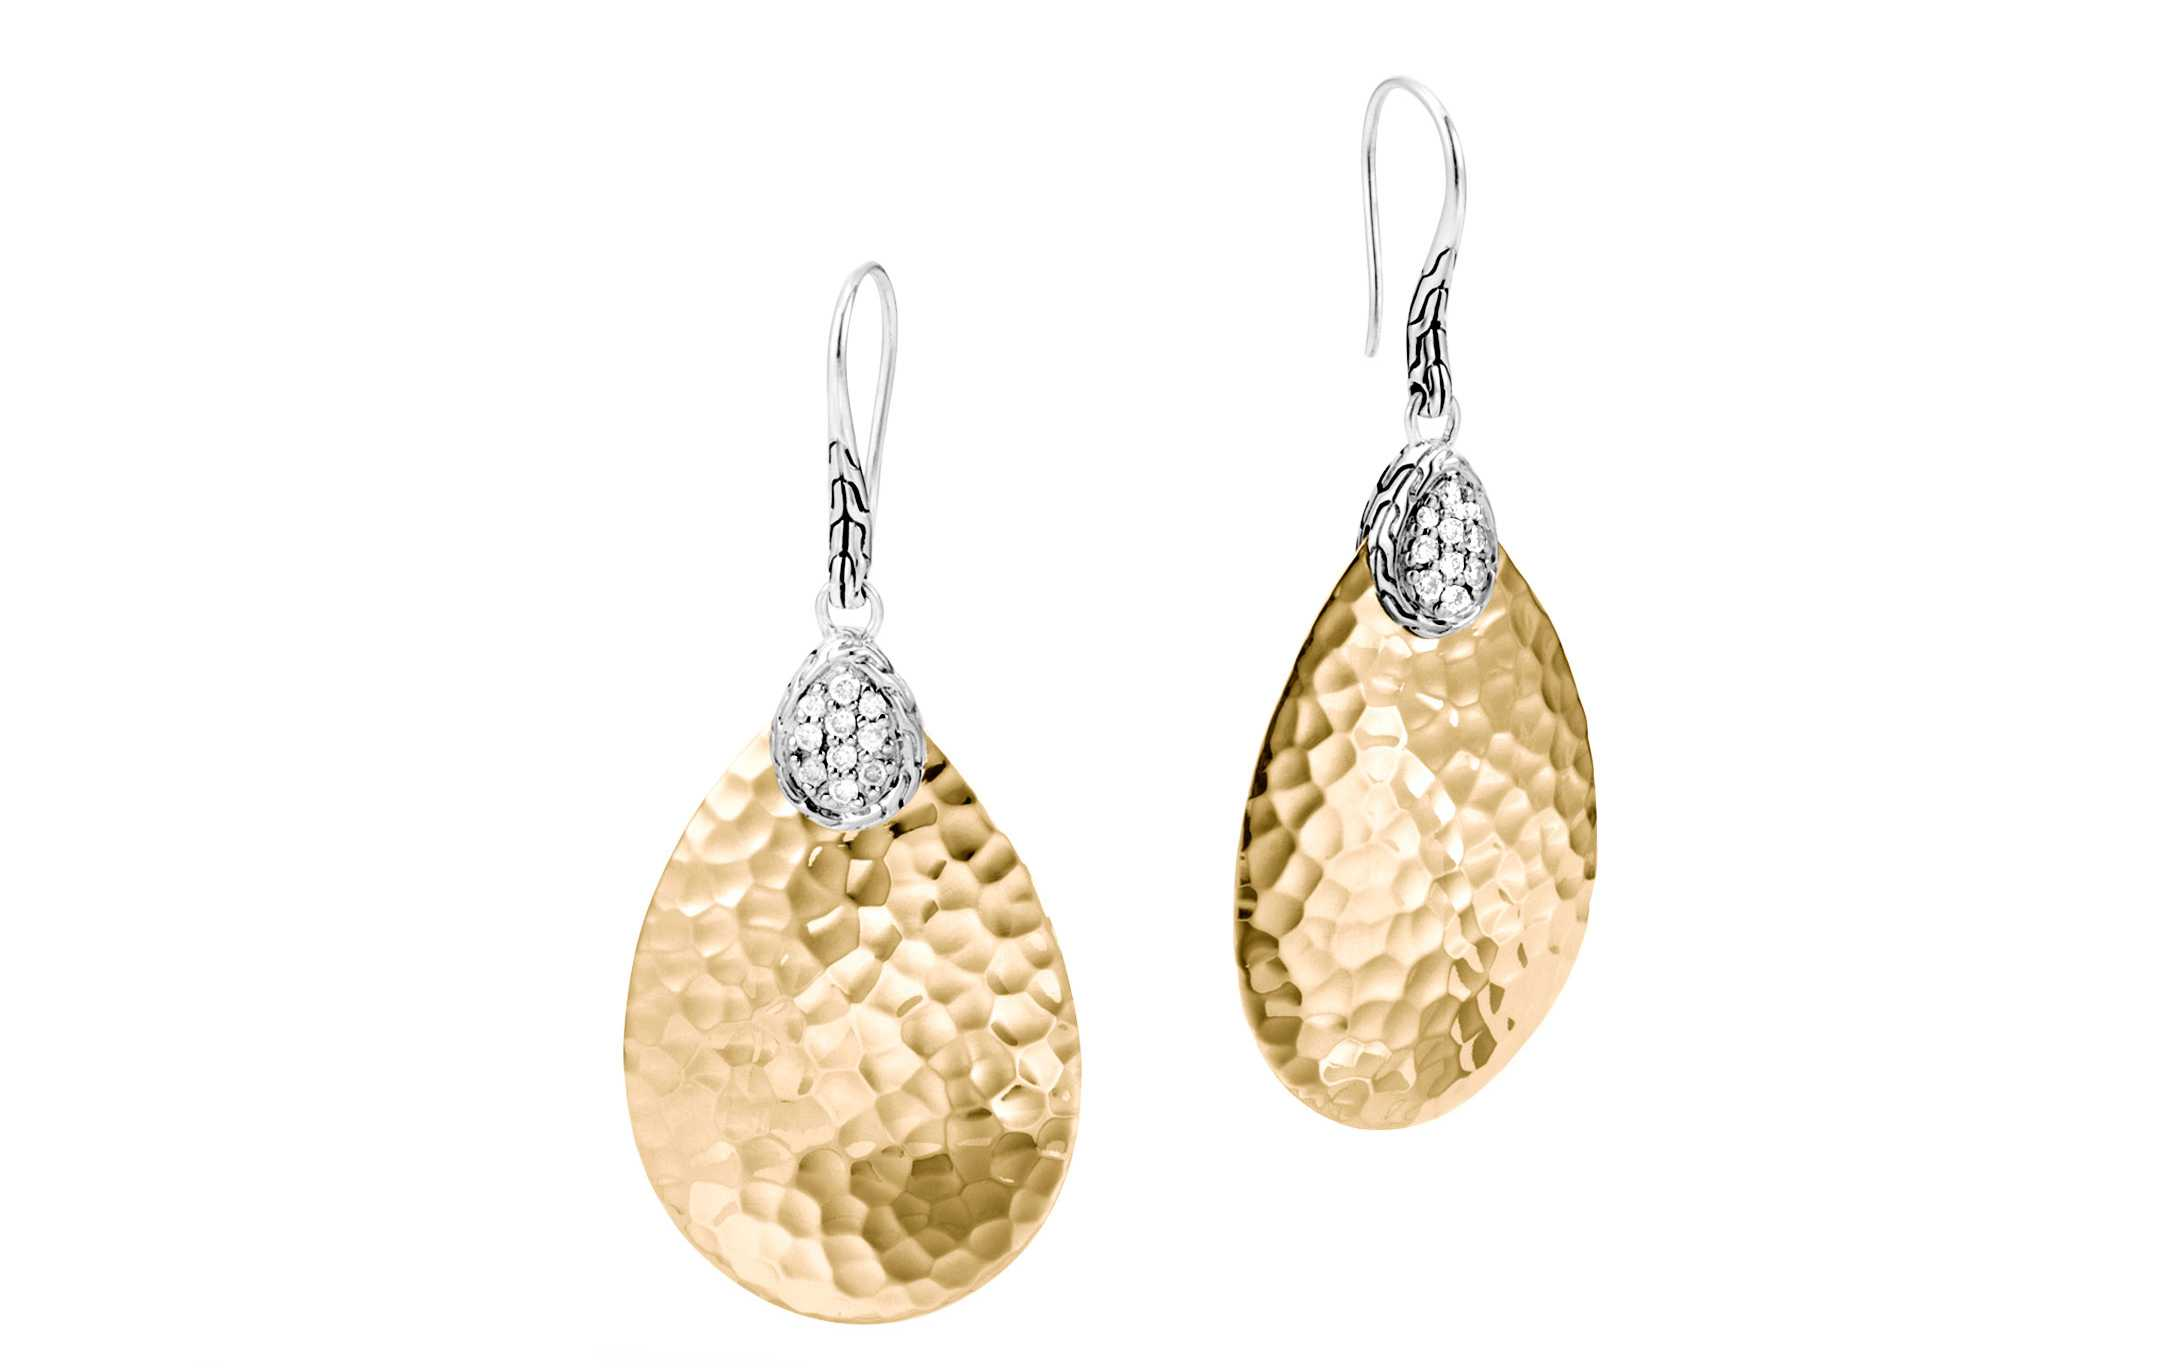 Earrings - Two-Tone Sterling And 18K Pave Classic Chain Small Drop Earrings With 0.27Tw Round Diamonds